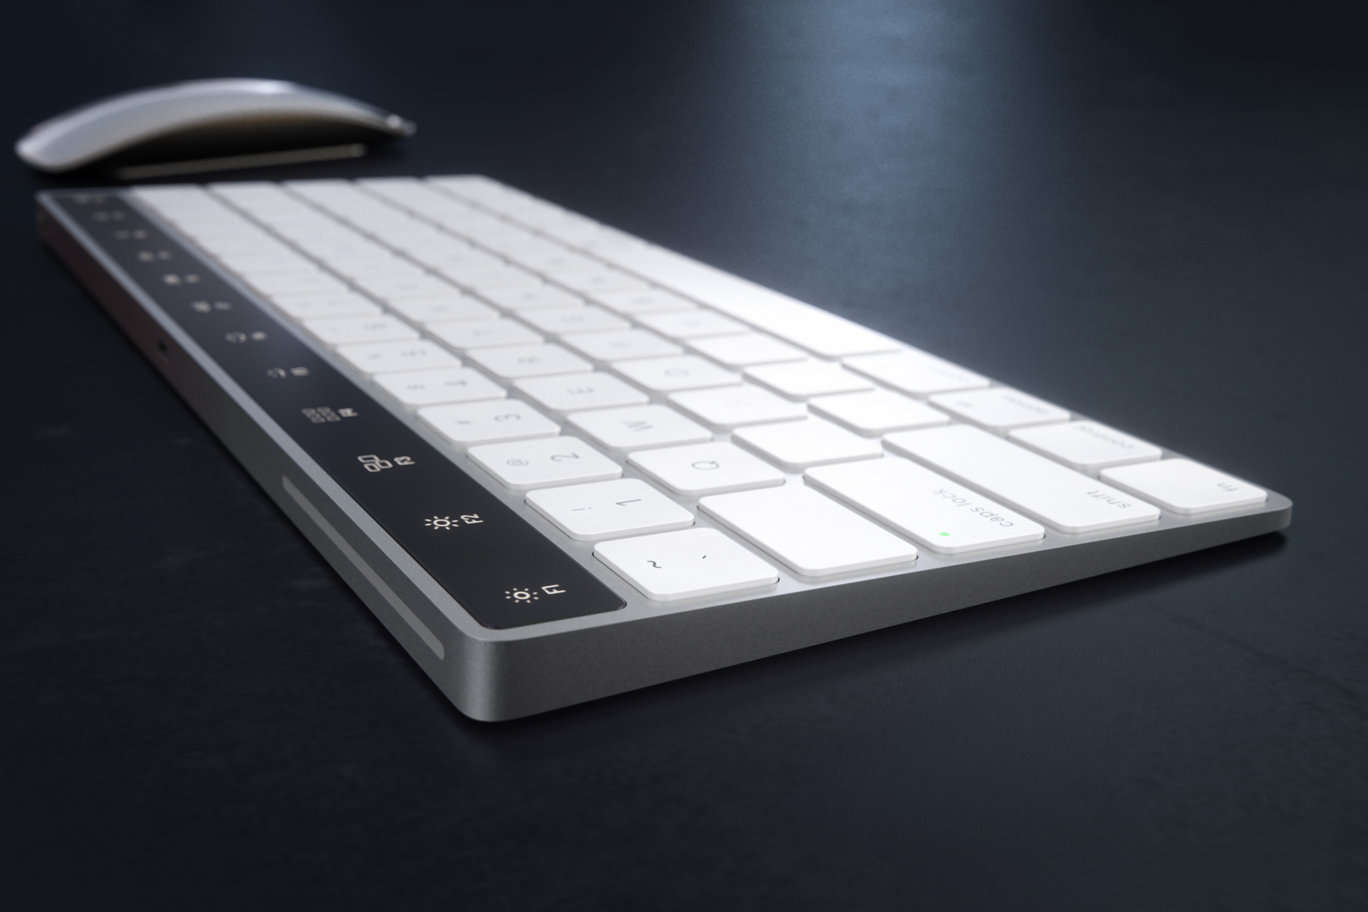 64f2ec98a3e Concept brings rumored MacBook OLED fn key row to Apple's wireless ...